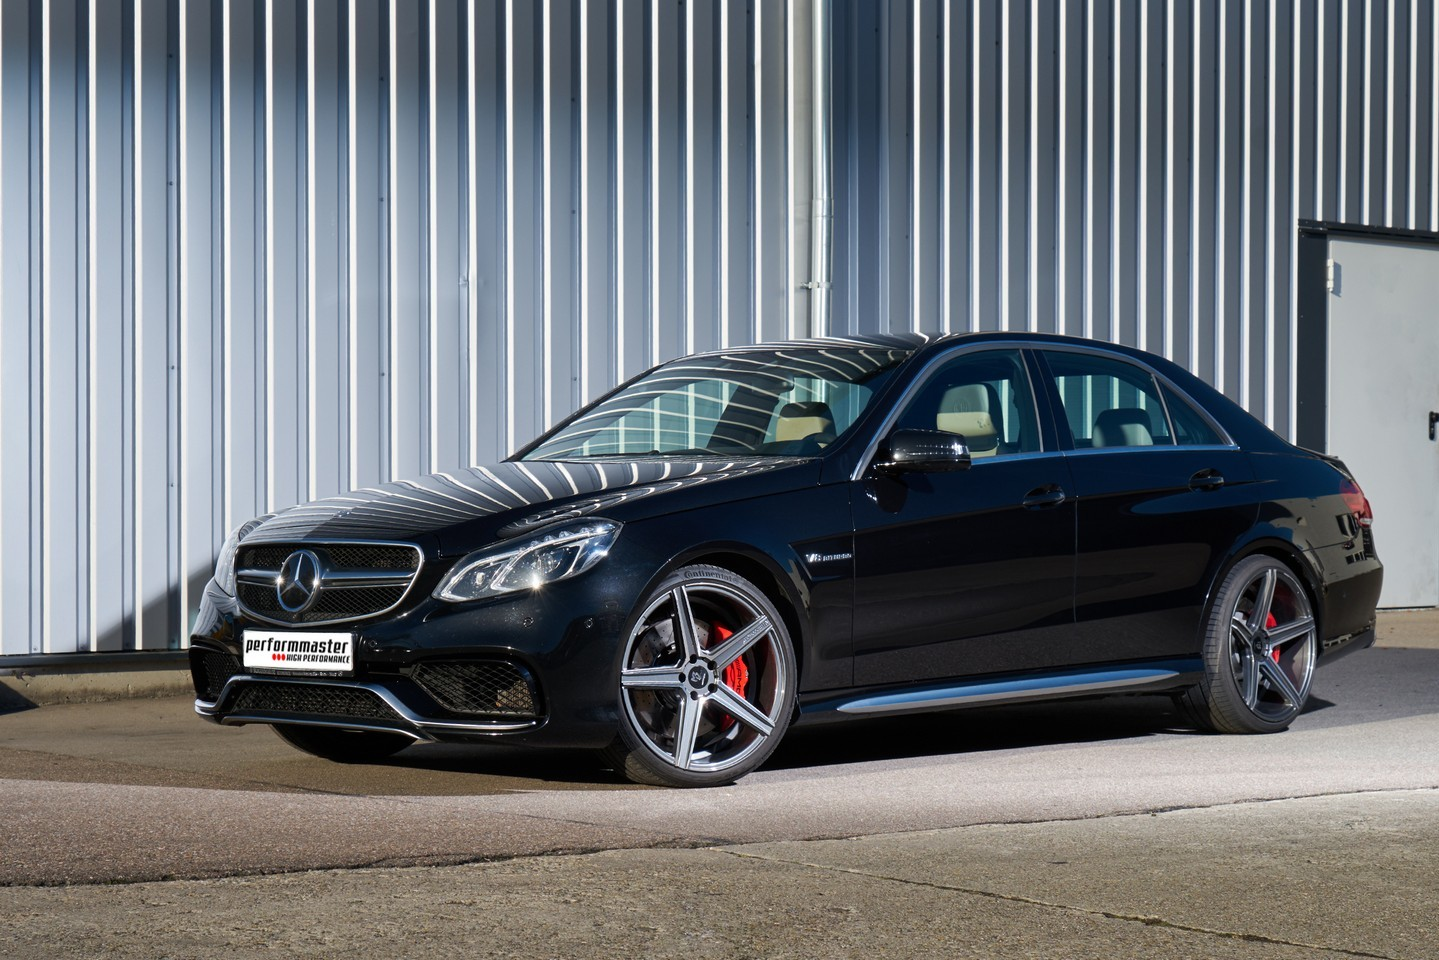 Mercedes benz e63 amg tuned by perfommaster to over 700hp for Mercedes benz e 63 amg